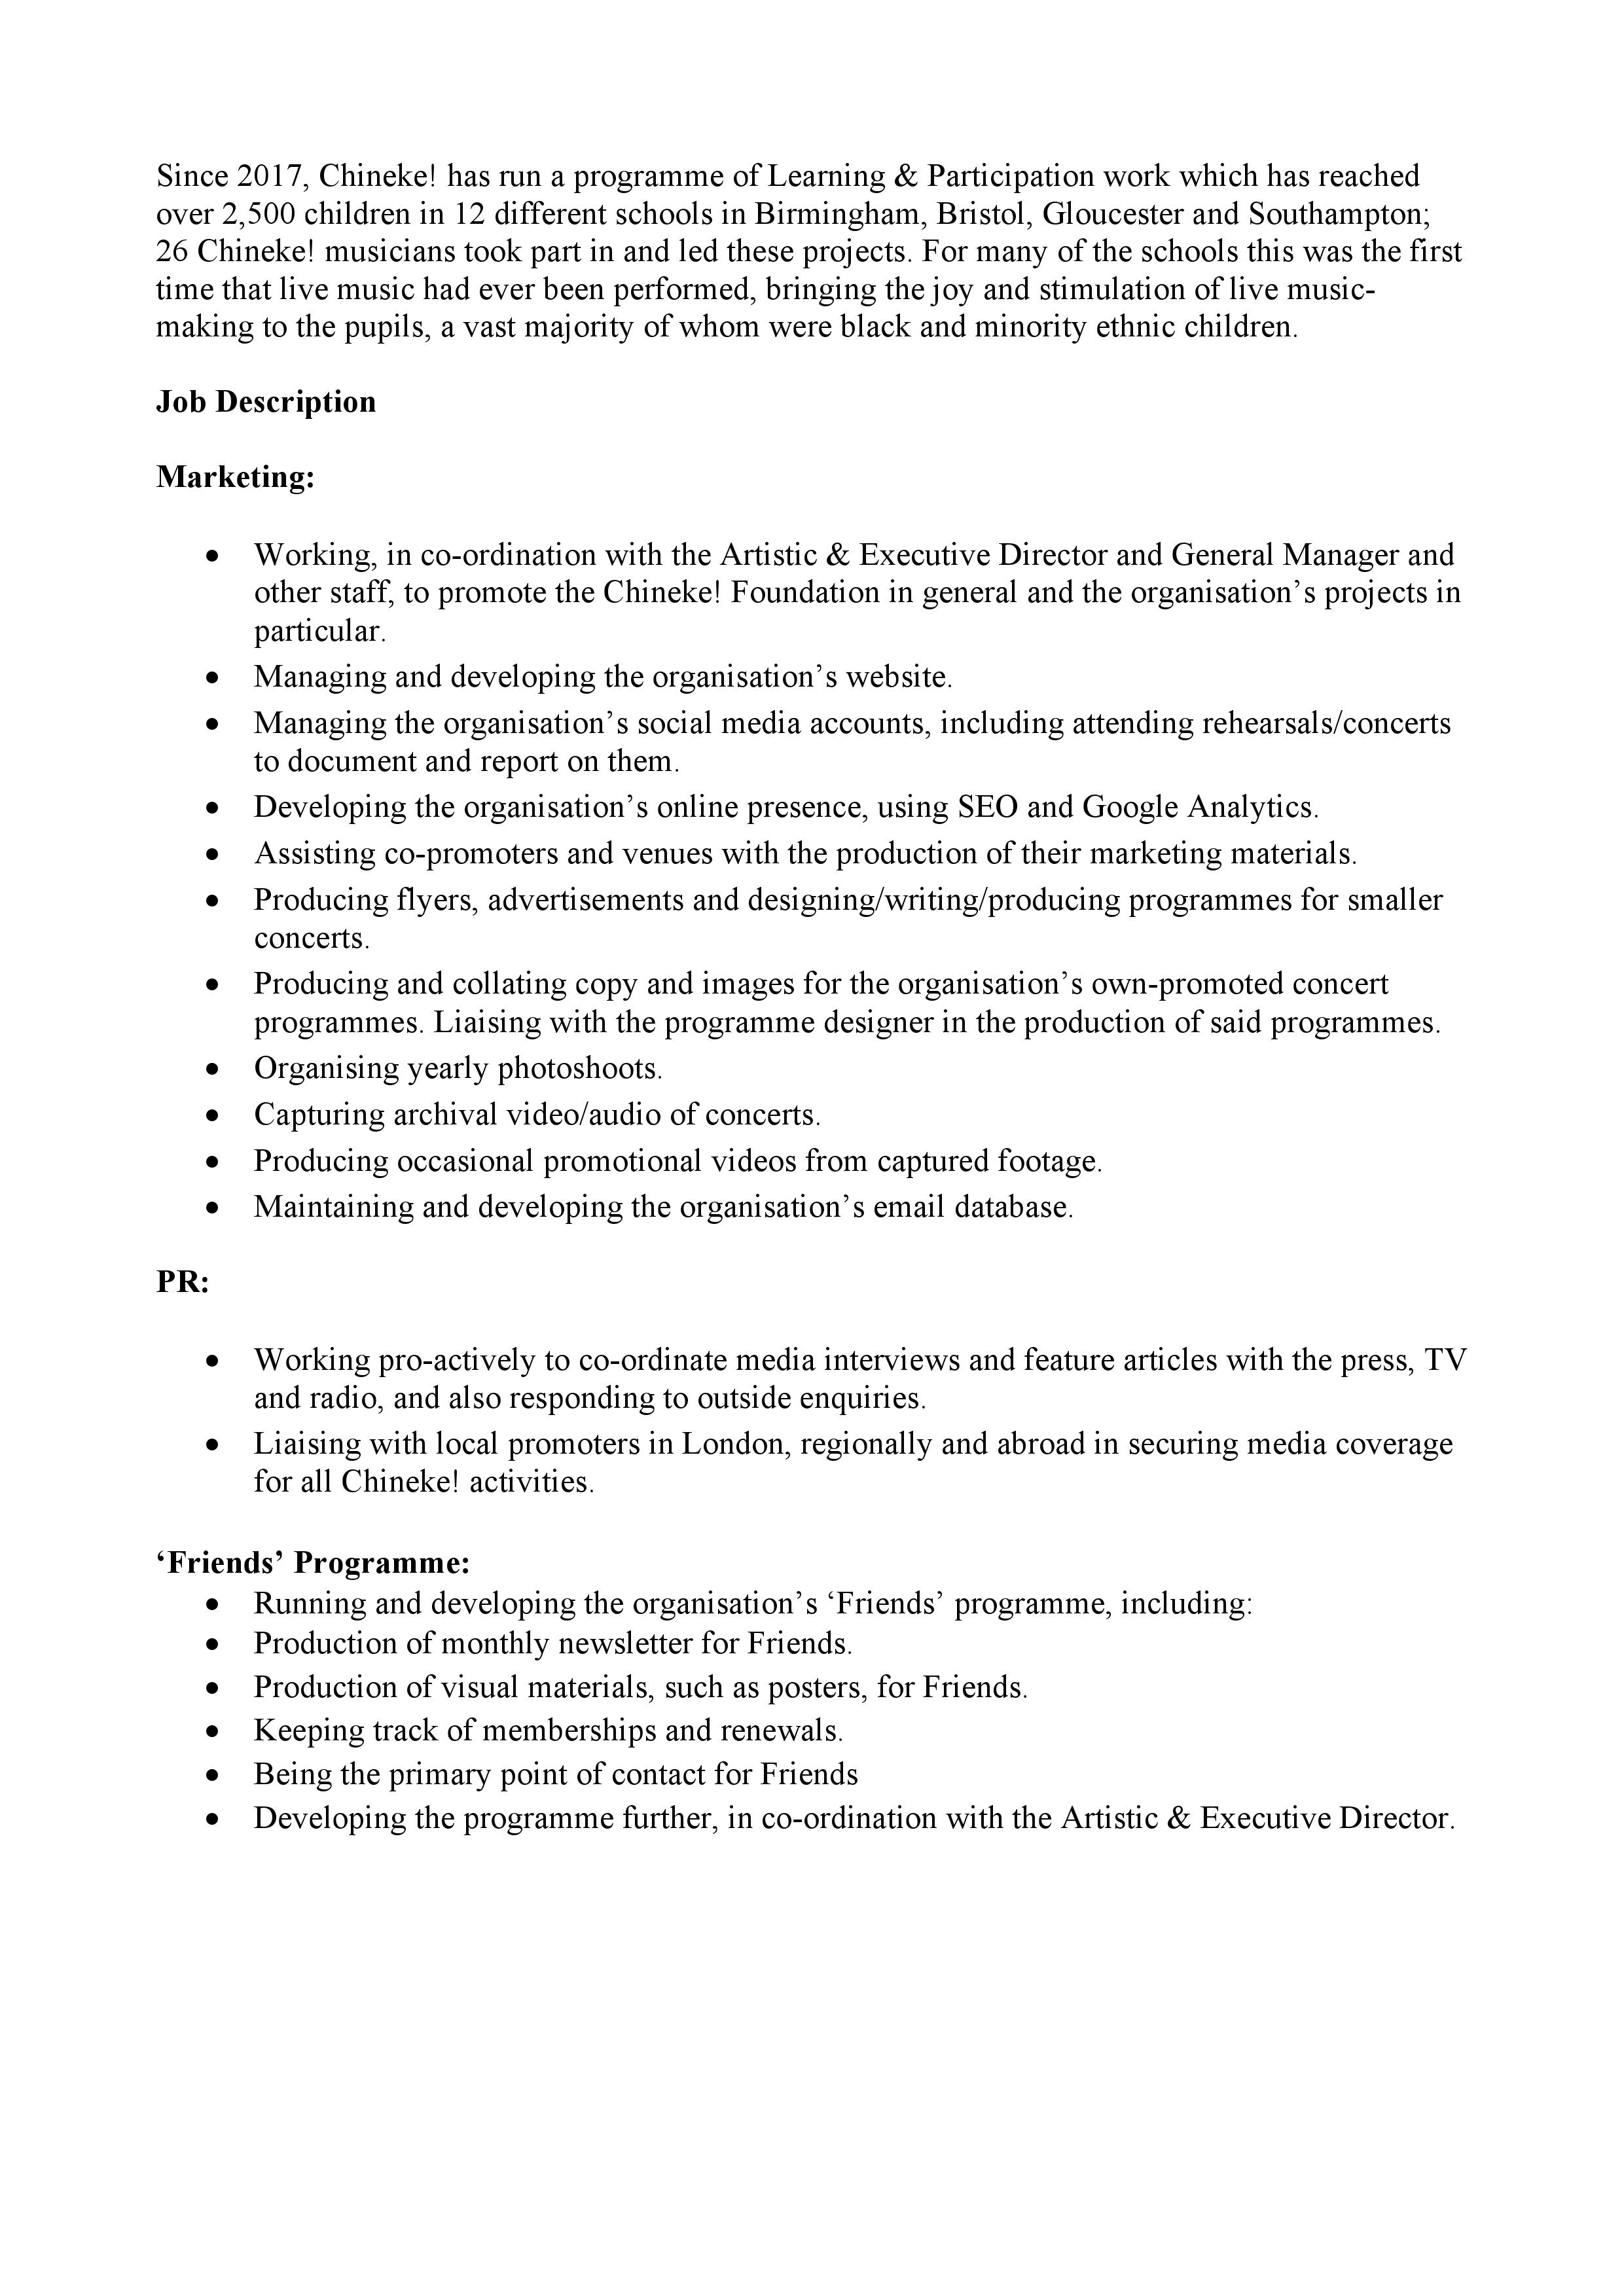 Marketing & PR Officer Job Description and Person Spec, April 2019_2.jpg